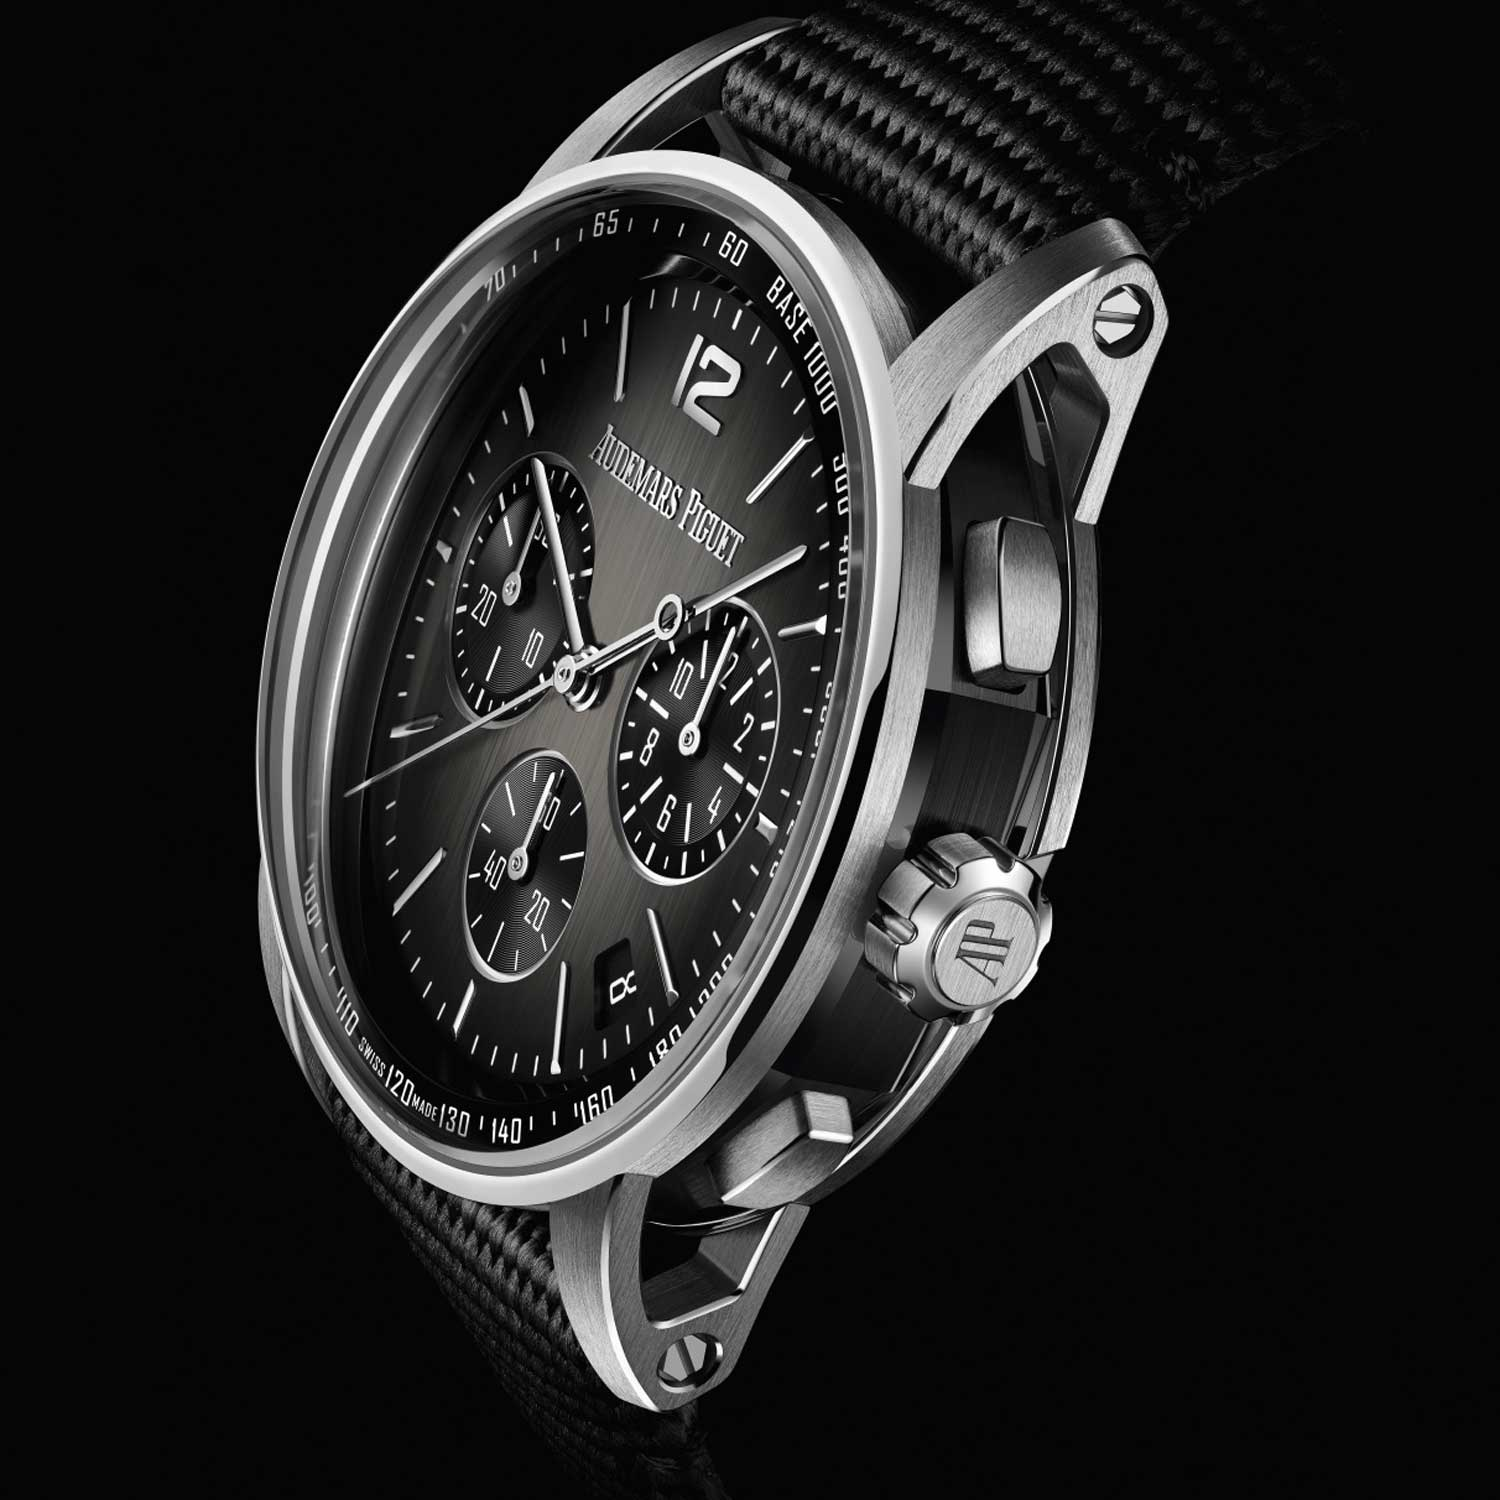 The new Code 11.59 in 18k white gold case with black ceramic middle case, smoked grey lacquered dial and black rubber-coated strap.